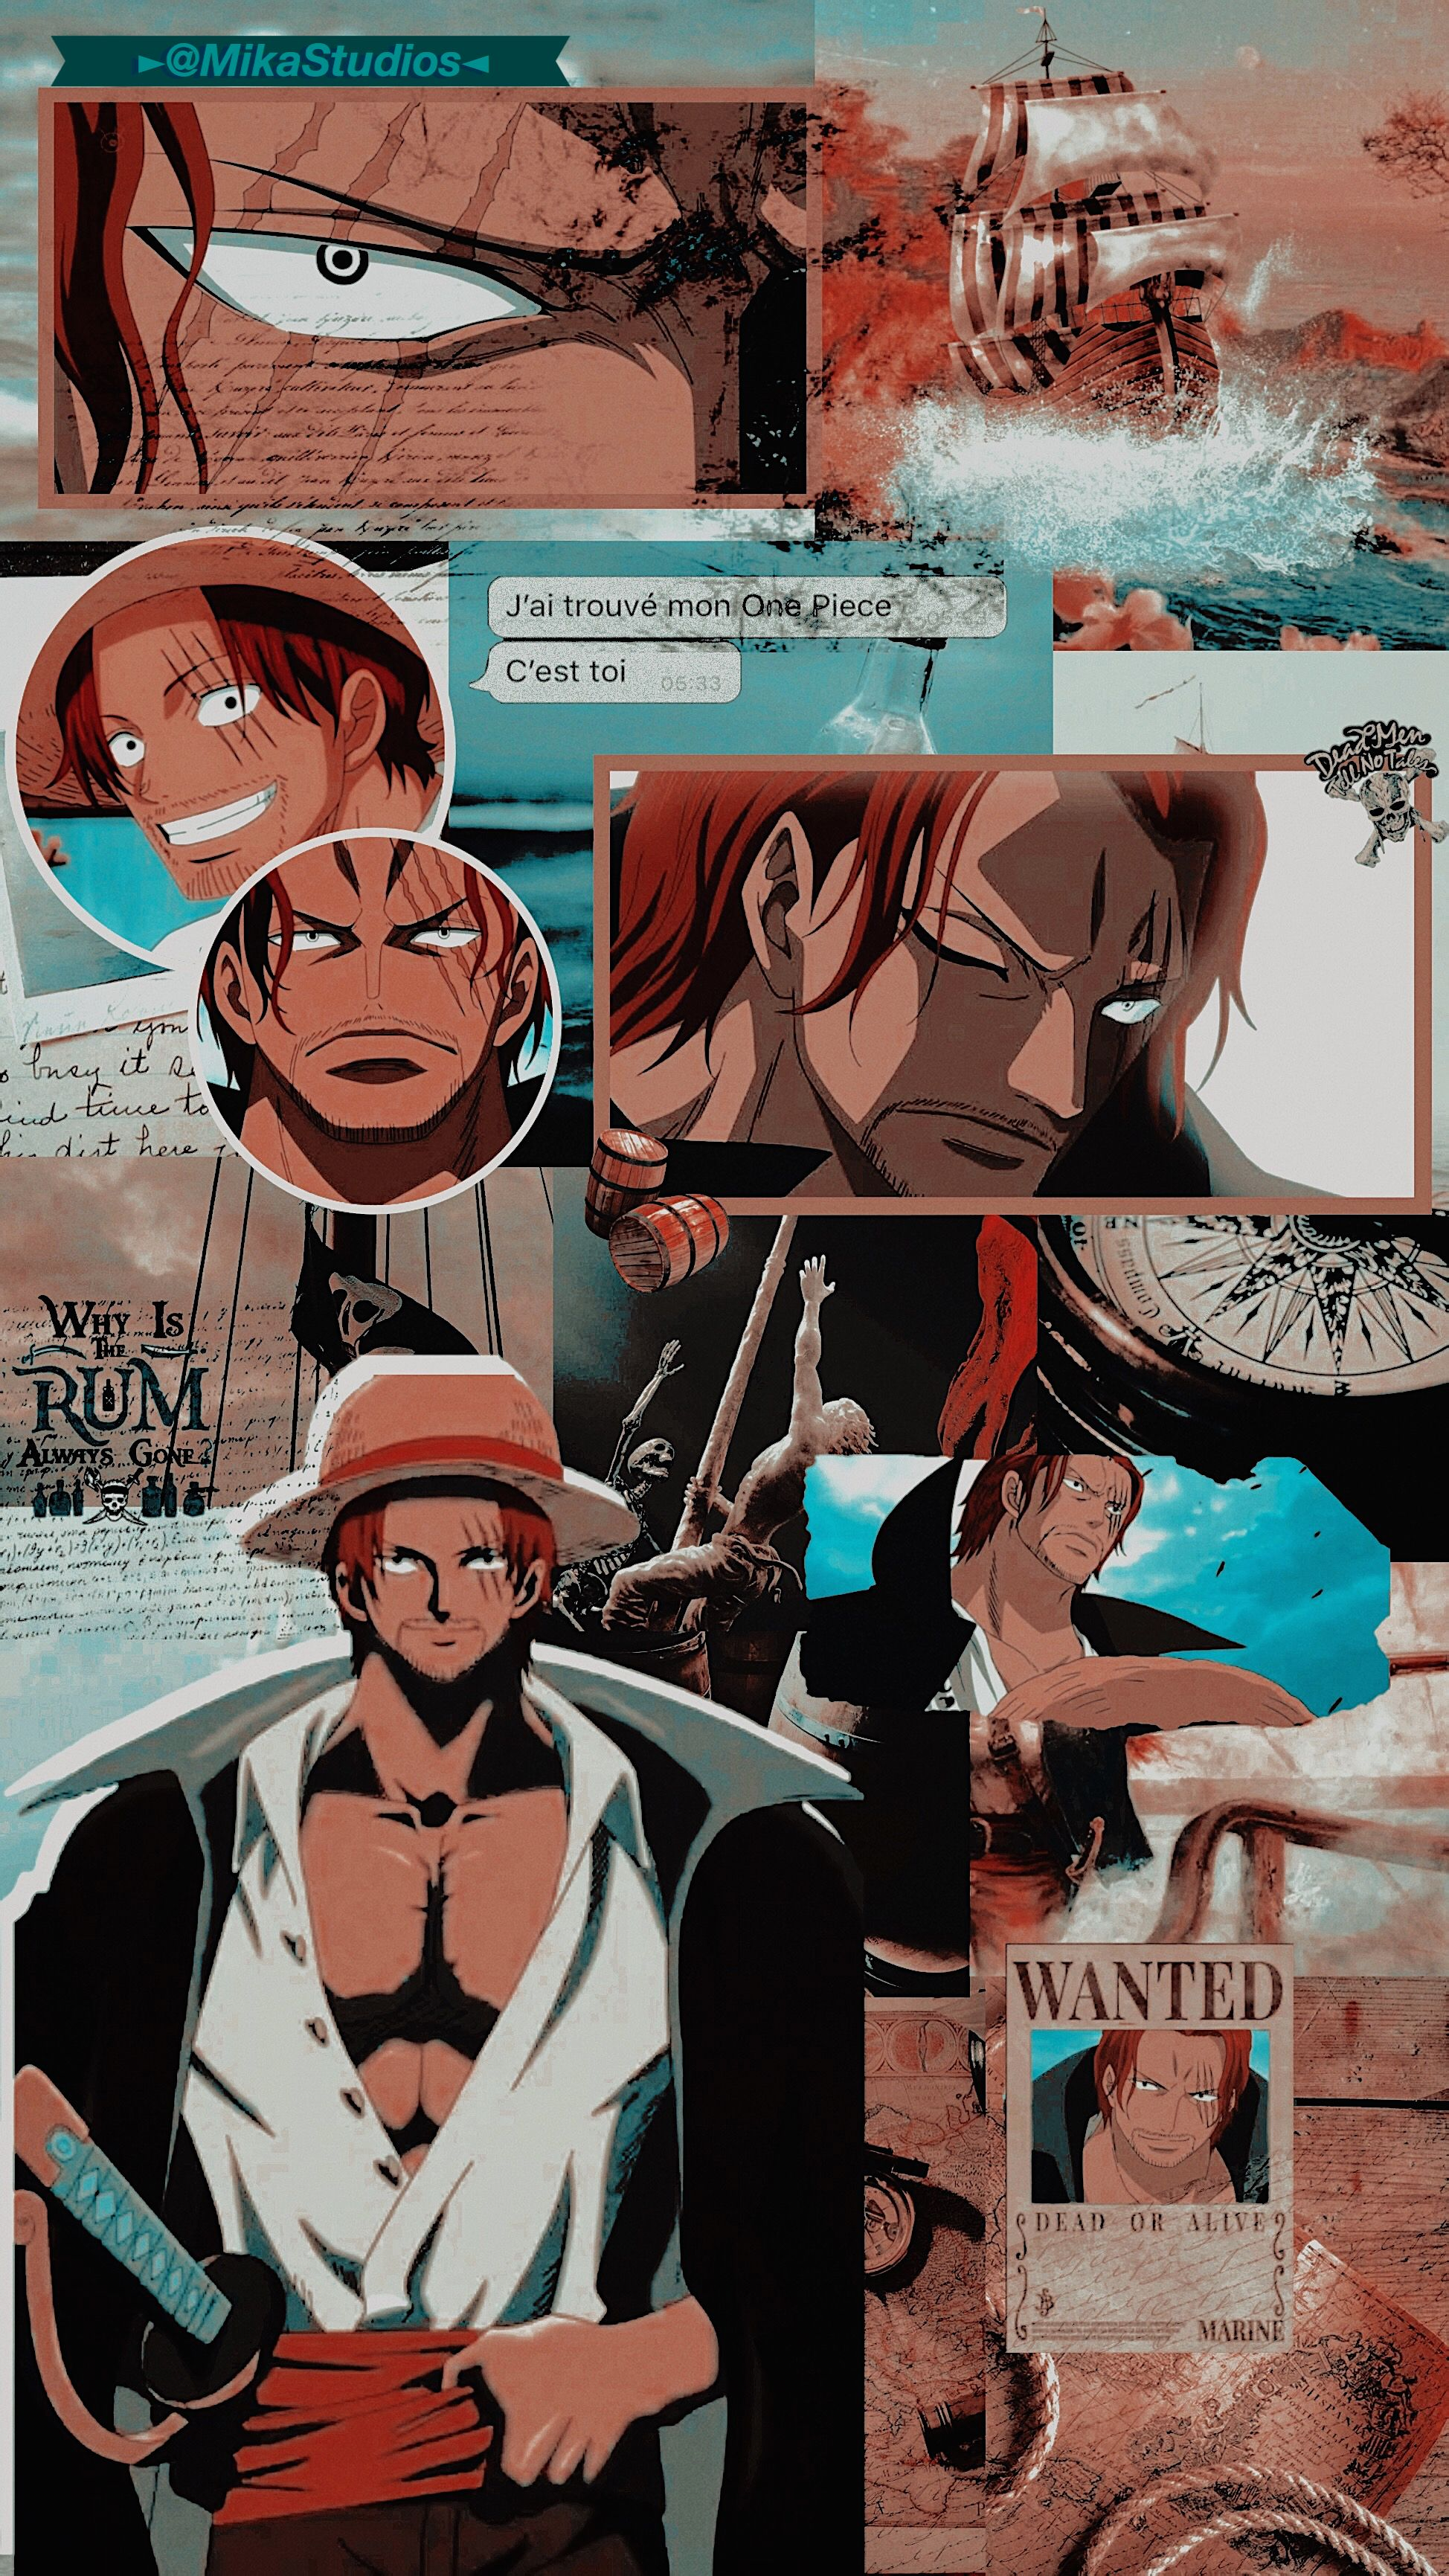 Anime Wallpaper Hd Aesthetic Anime Wallpapers One Piece